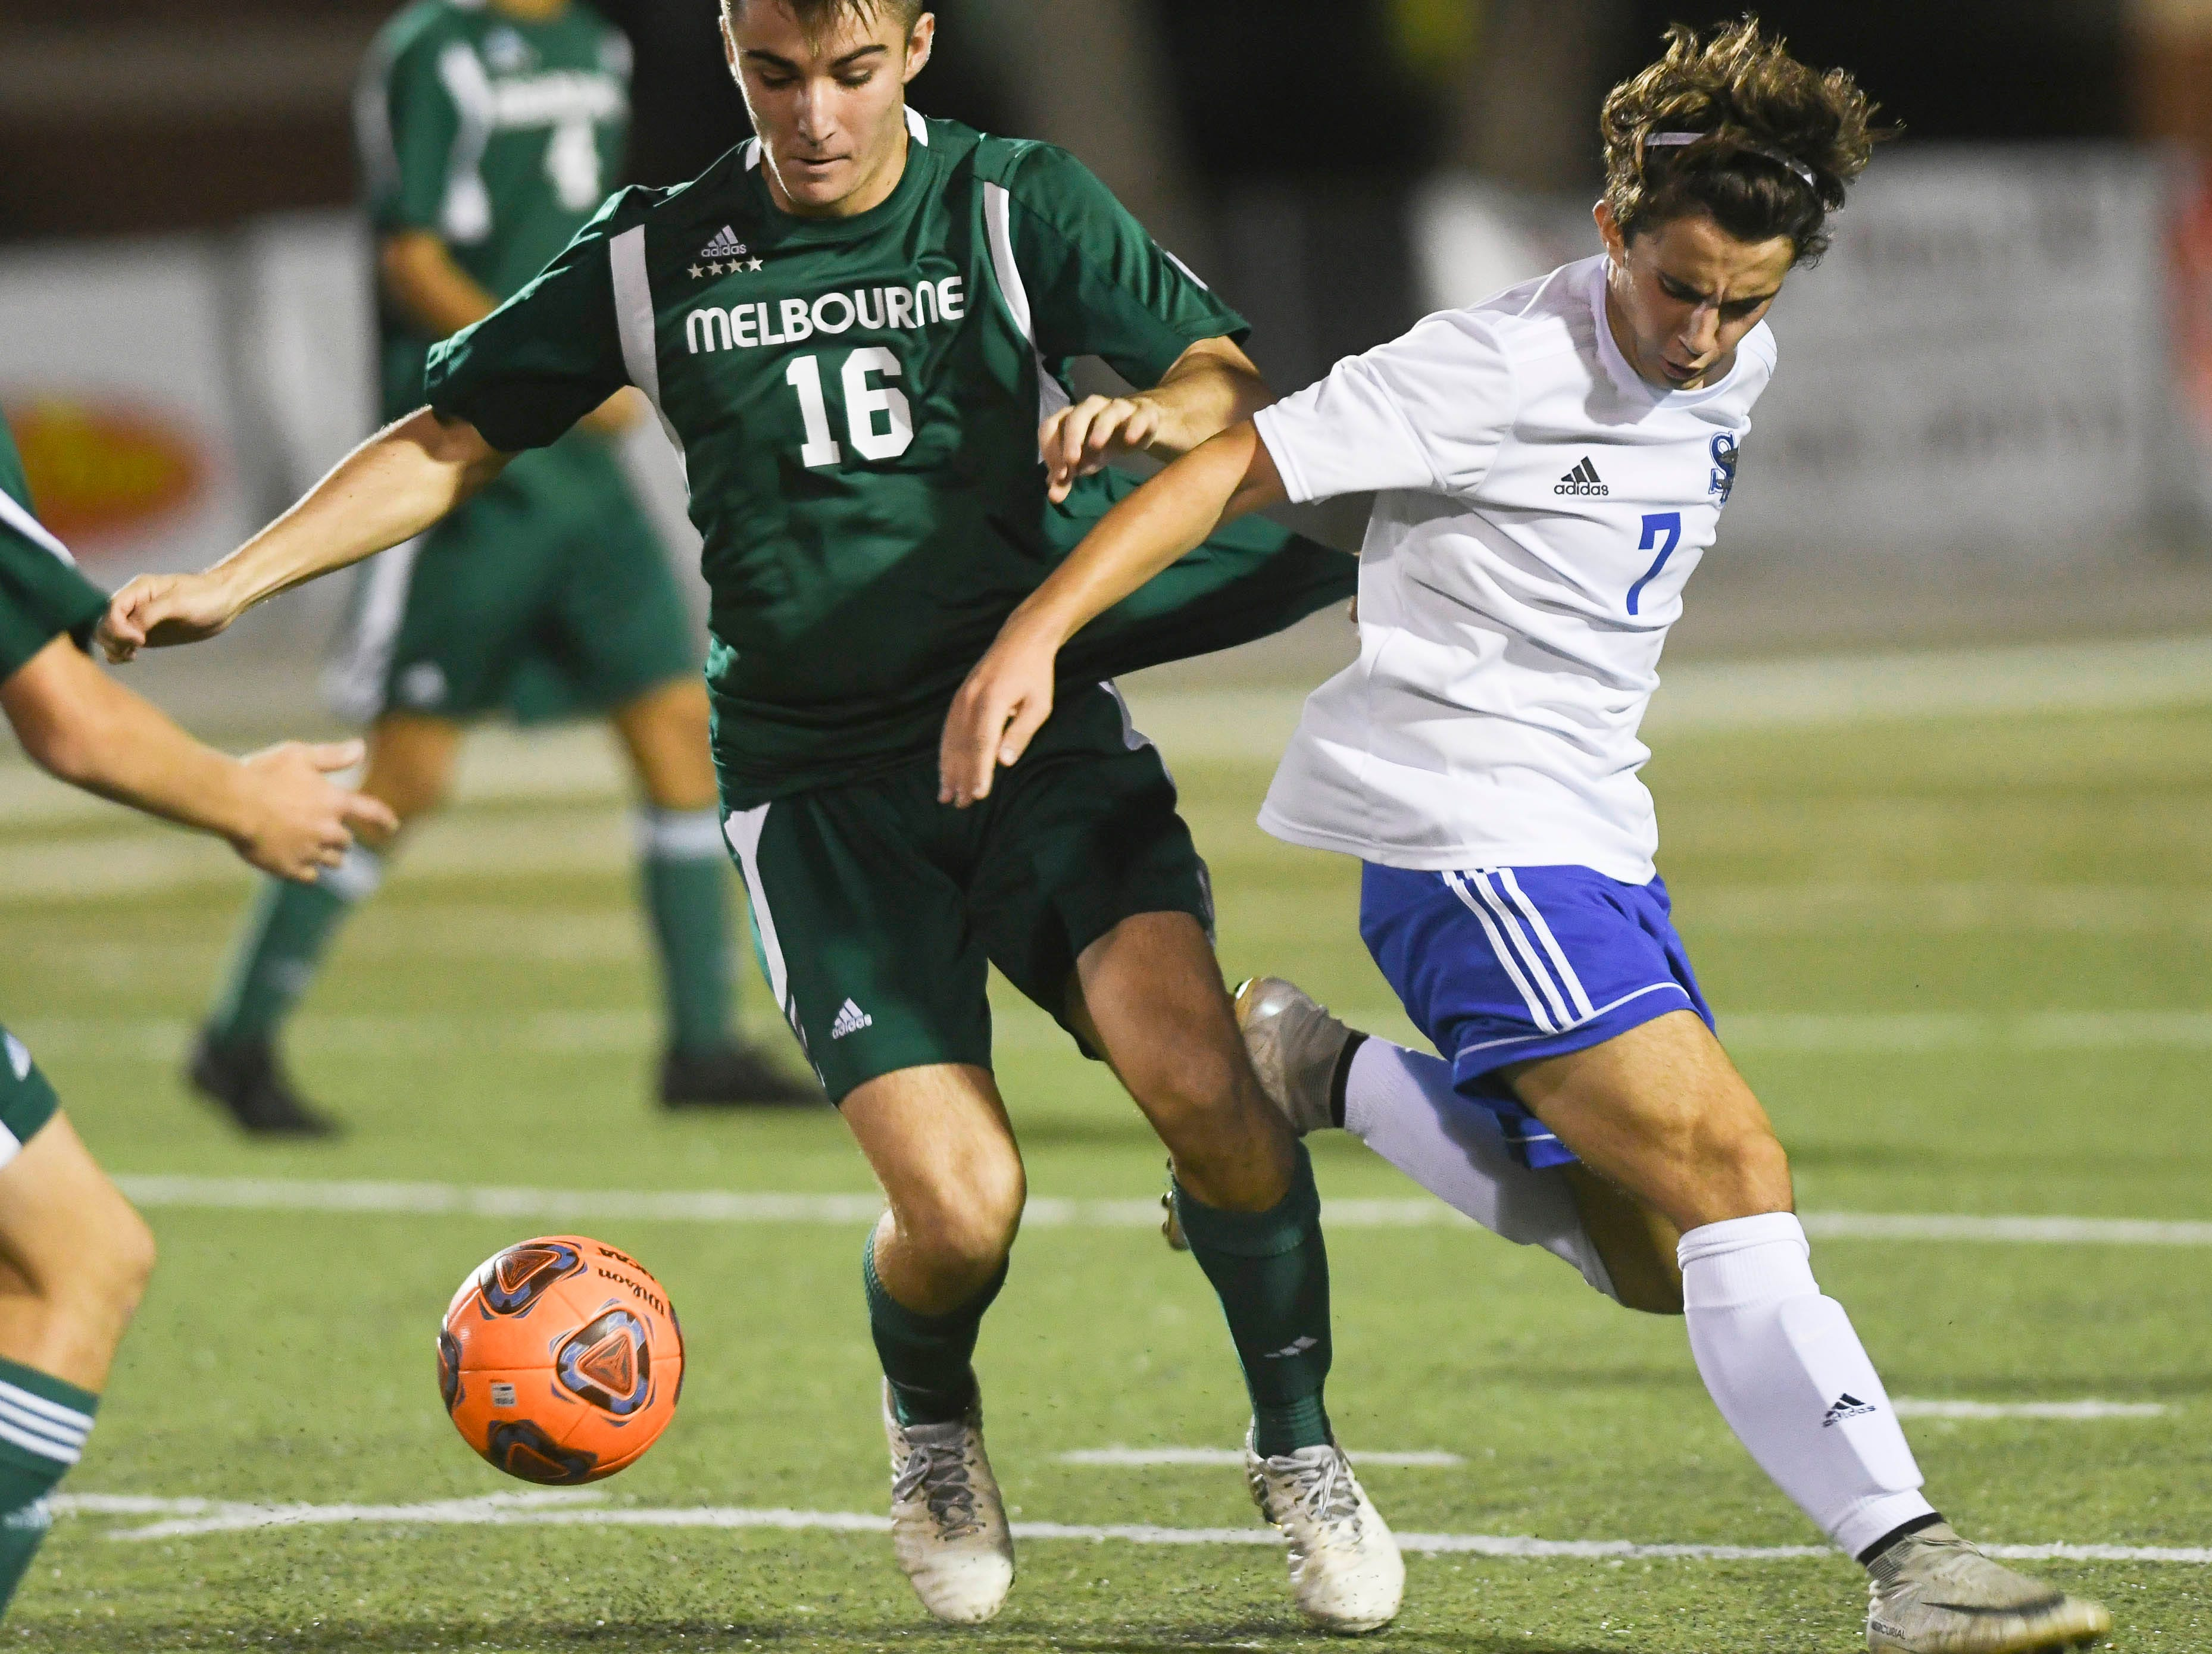 Melbourne's Calvin MacDonald and Marcos Gonzalez of Sebastian River battle for control of the ball during Friday's game in Melbourne.